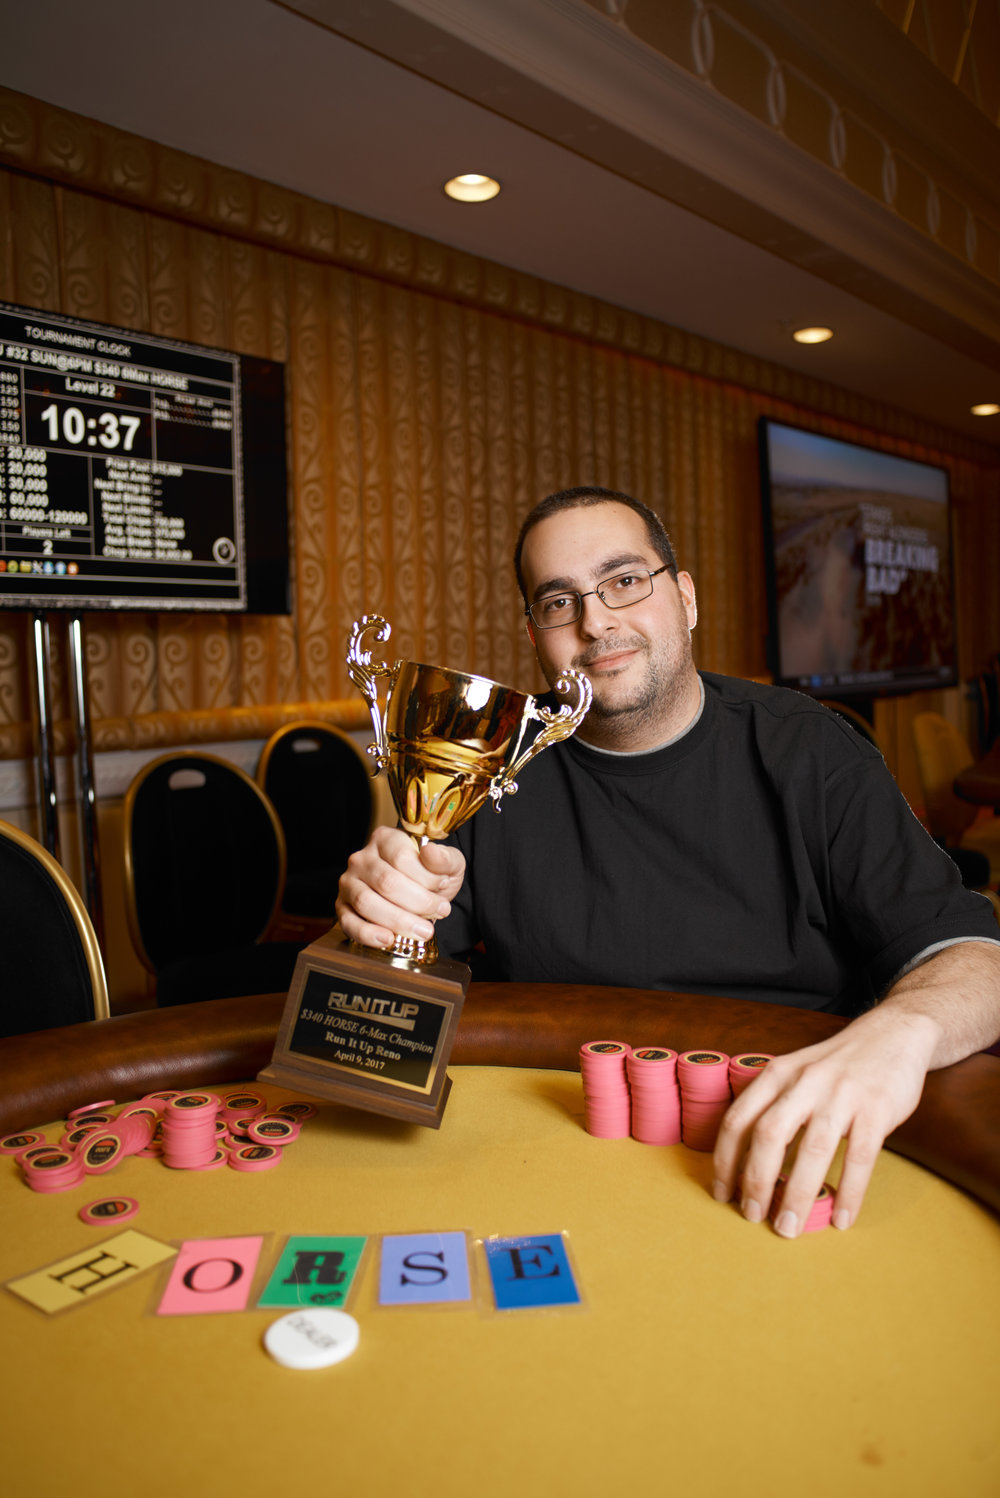 Shady Badran takes down the H.O.R.S.E. tournament for $4,002.